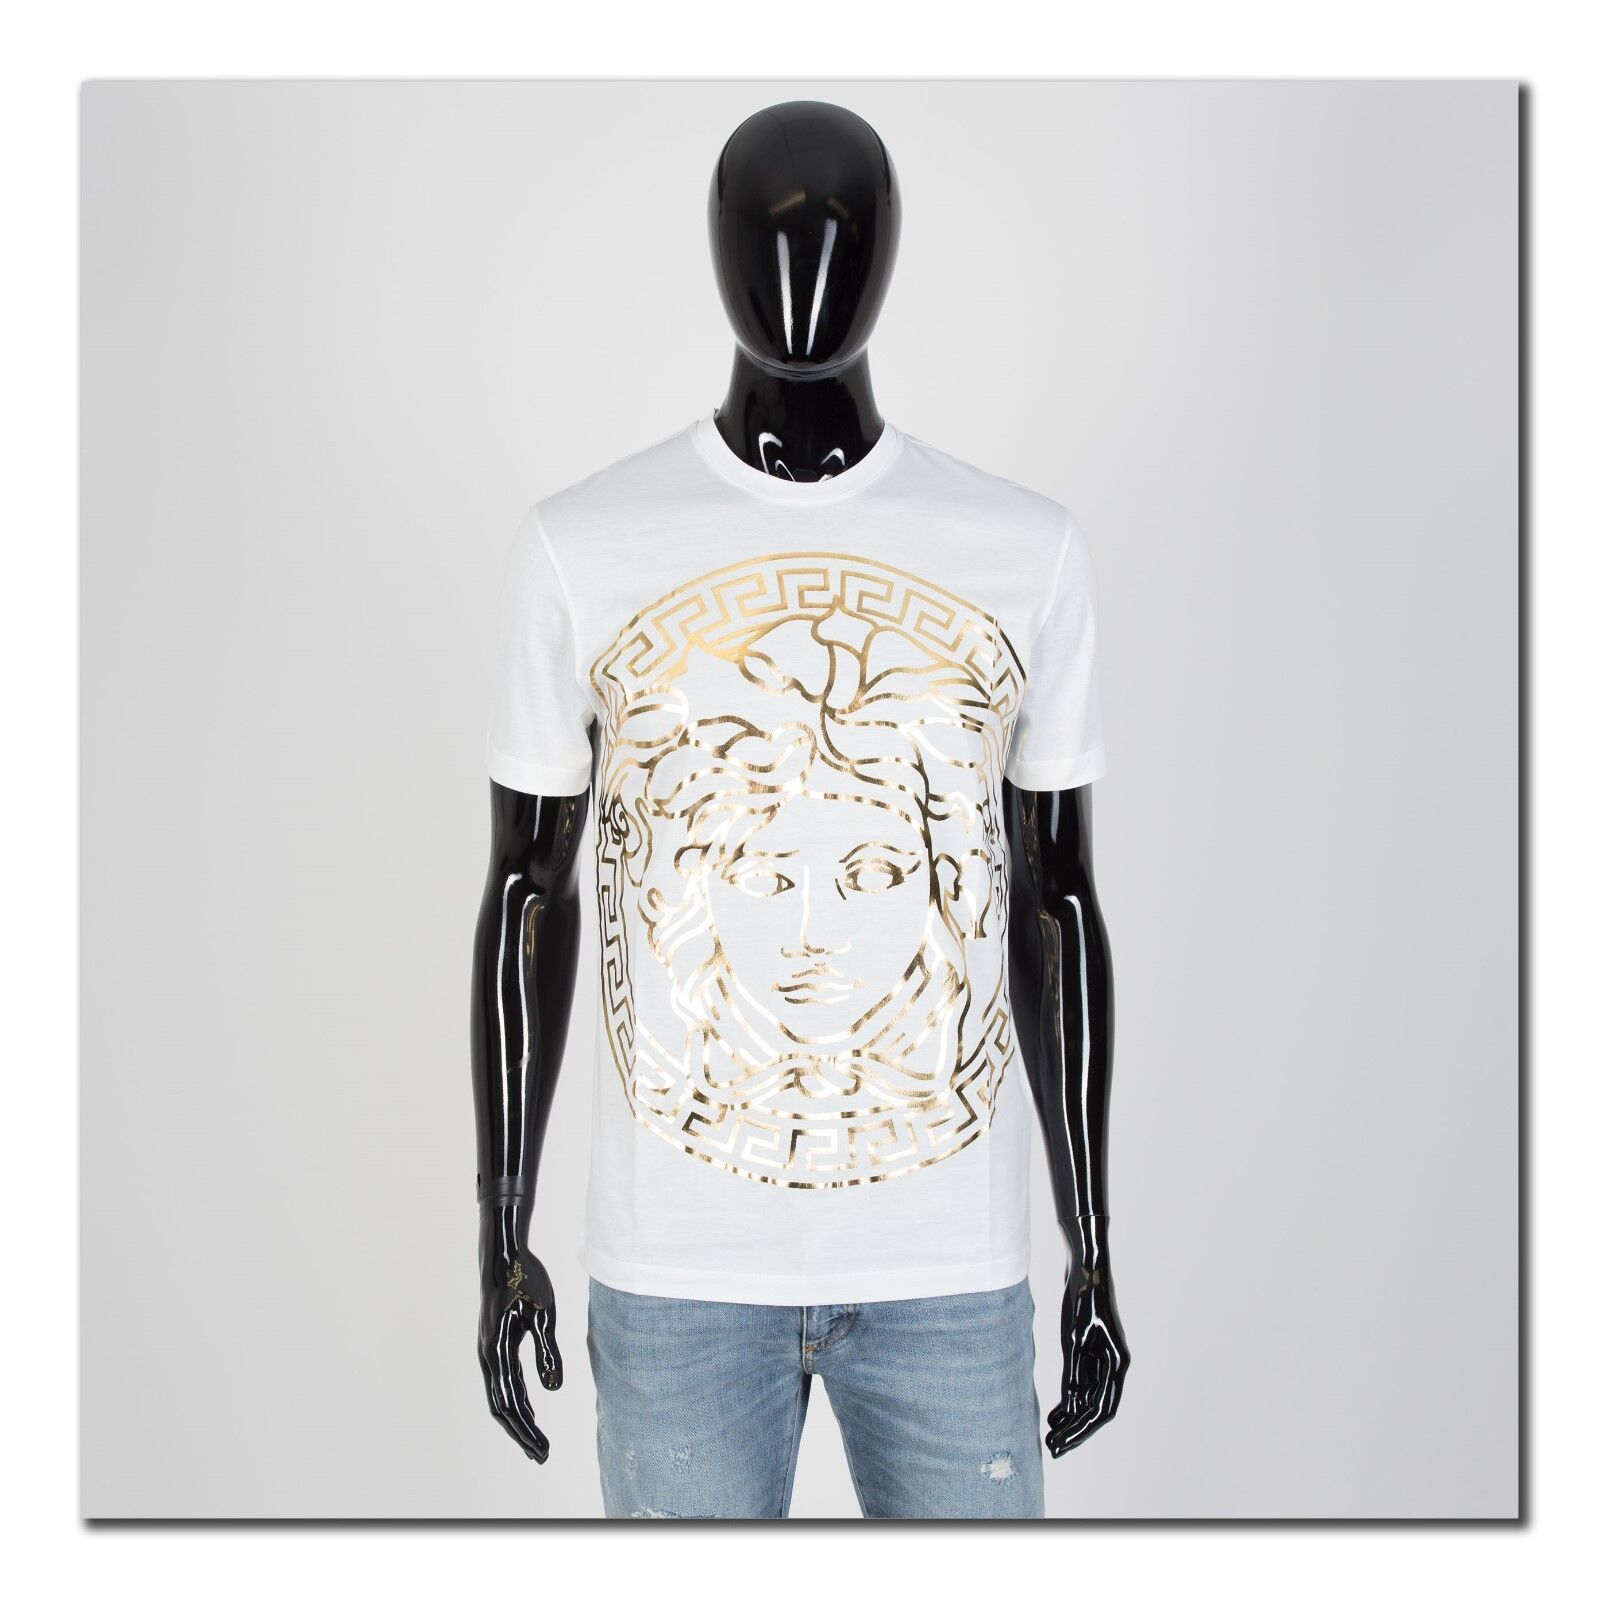 VERSACE 395 Authentic New SS19 Gold Medusa Head Print Tshirt In Weiß Cotton